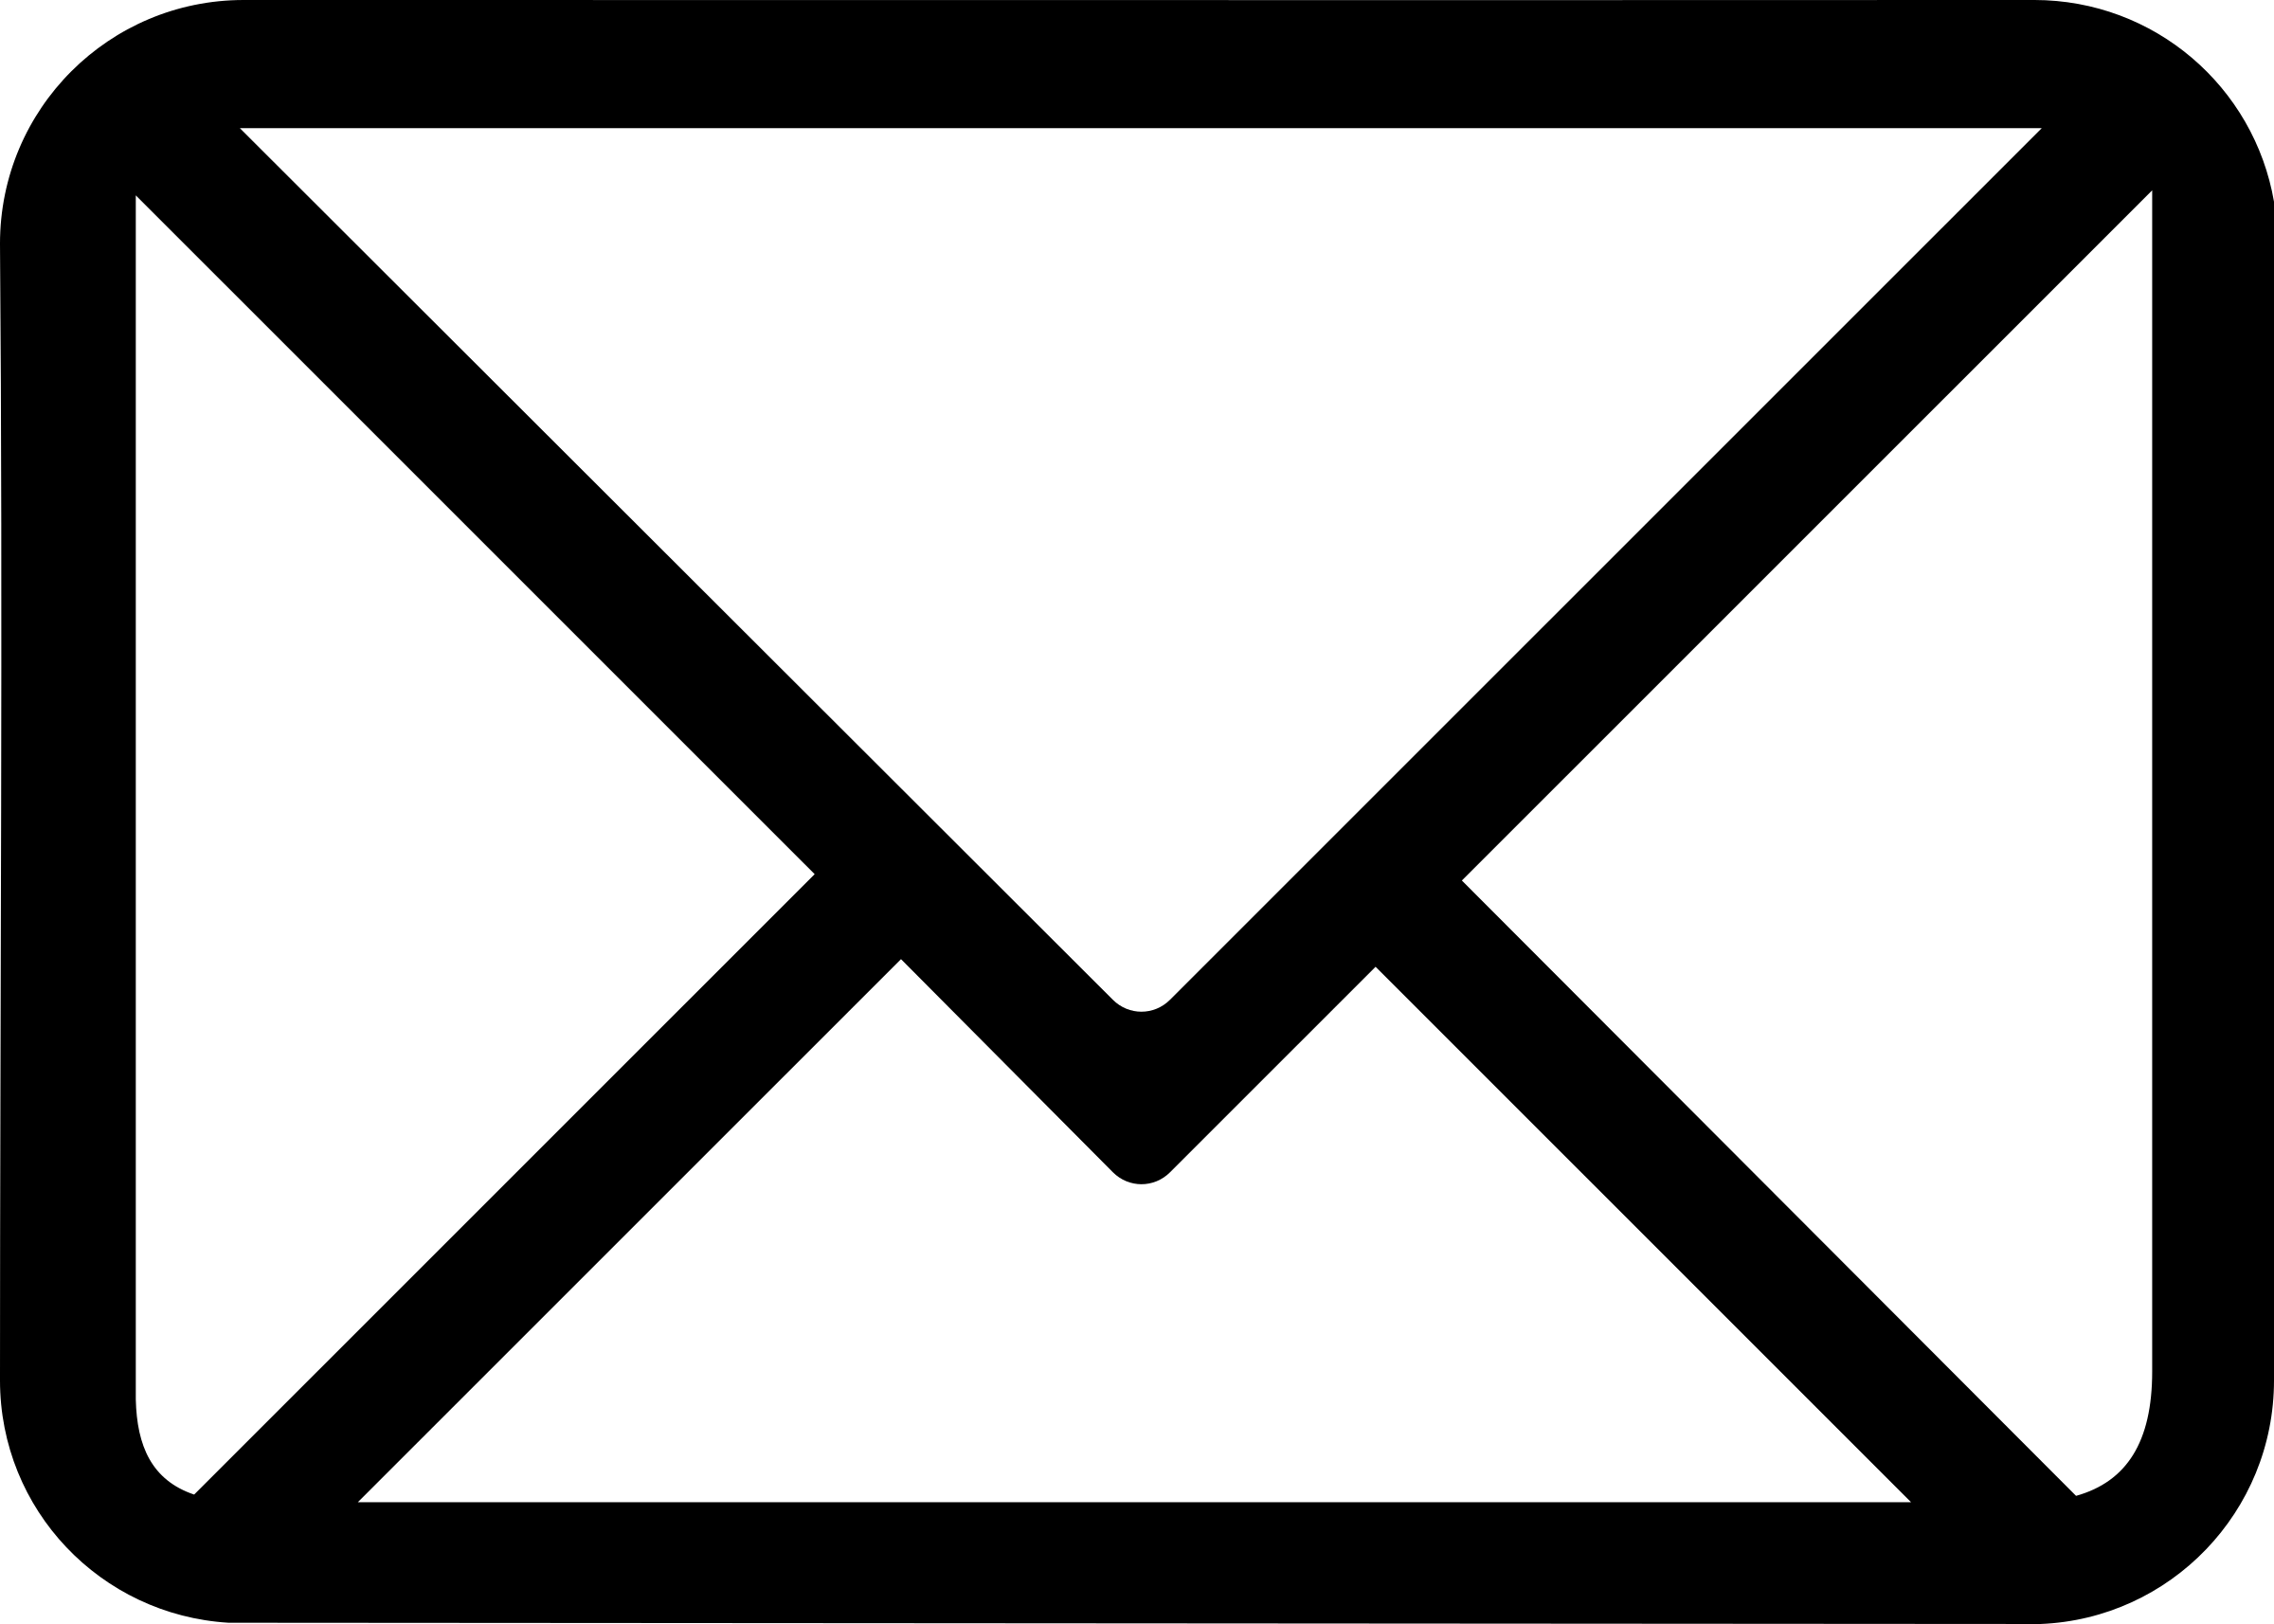 Download · Icons Logos Emojis · Email Icons - Email Icon PNG